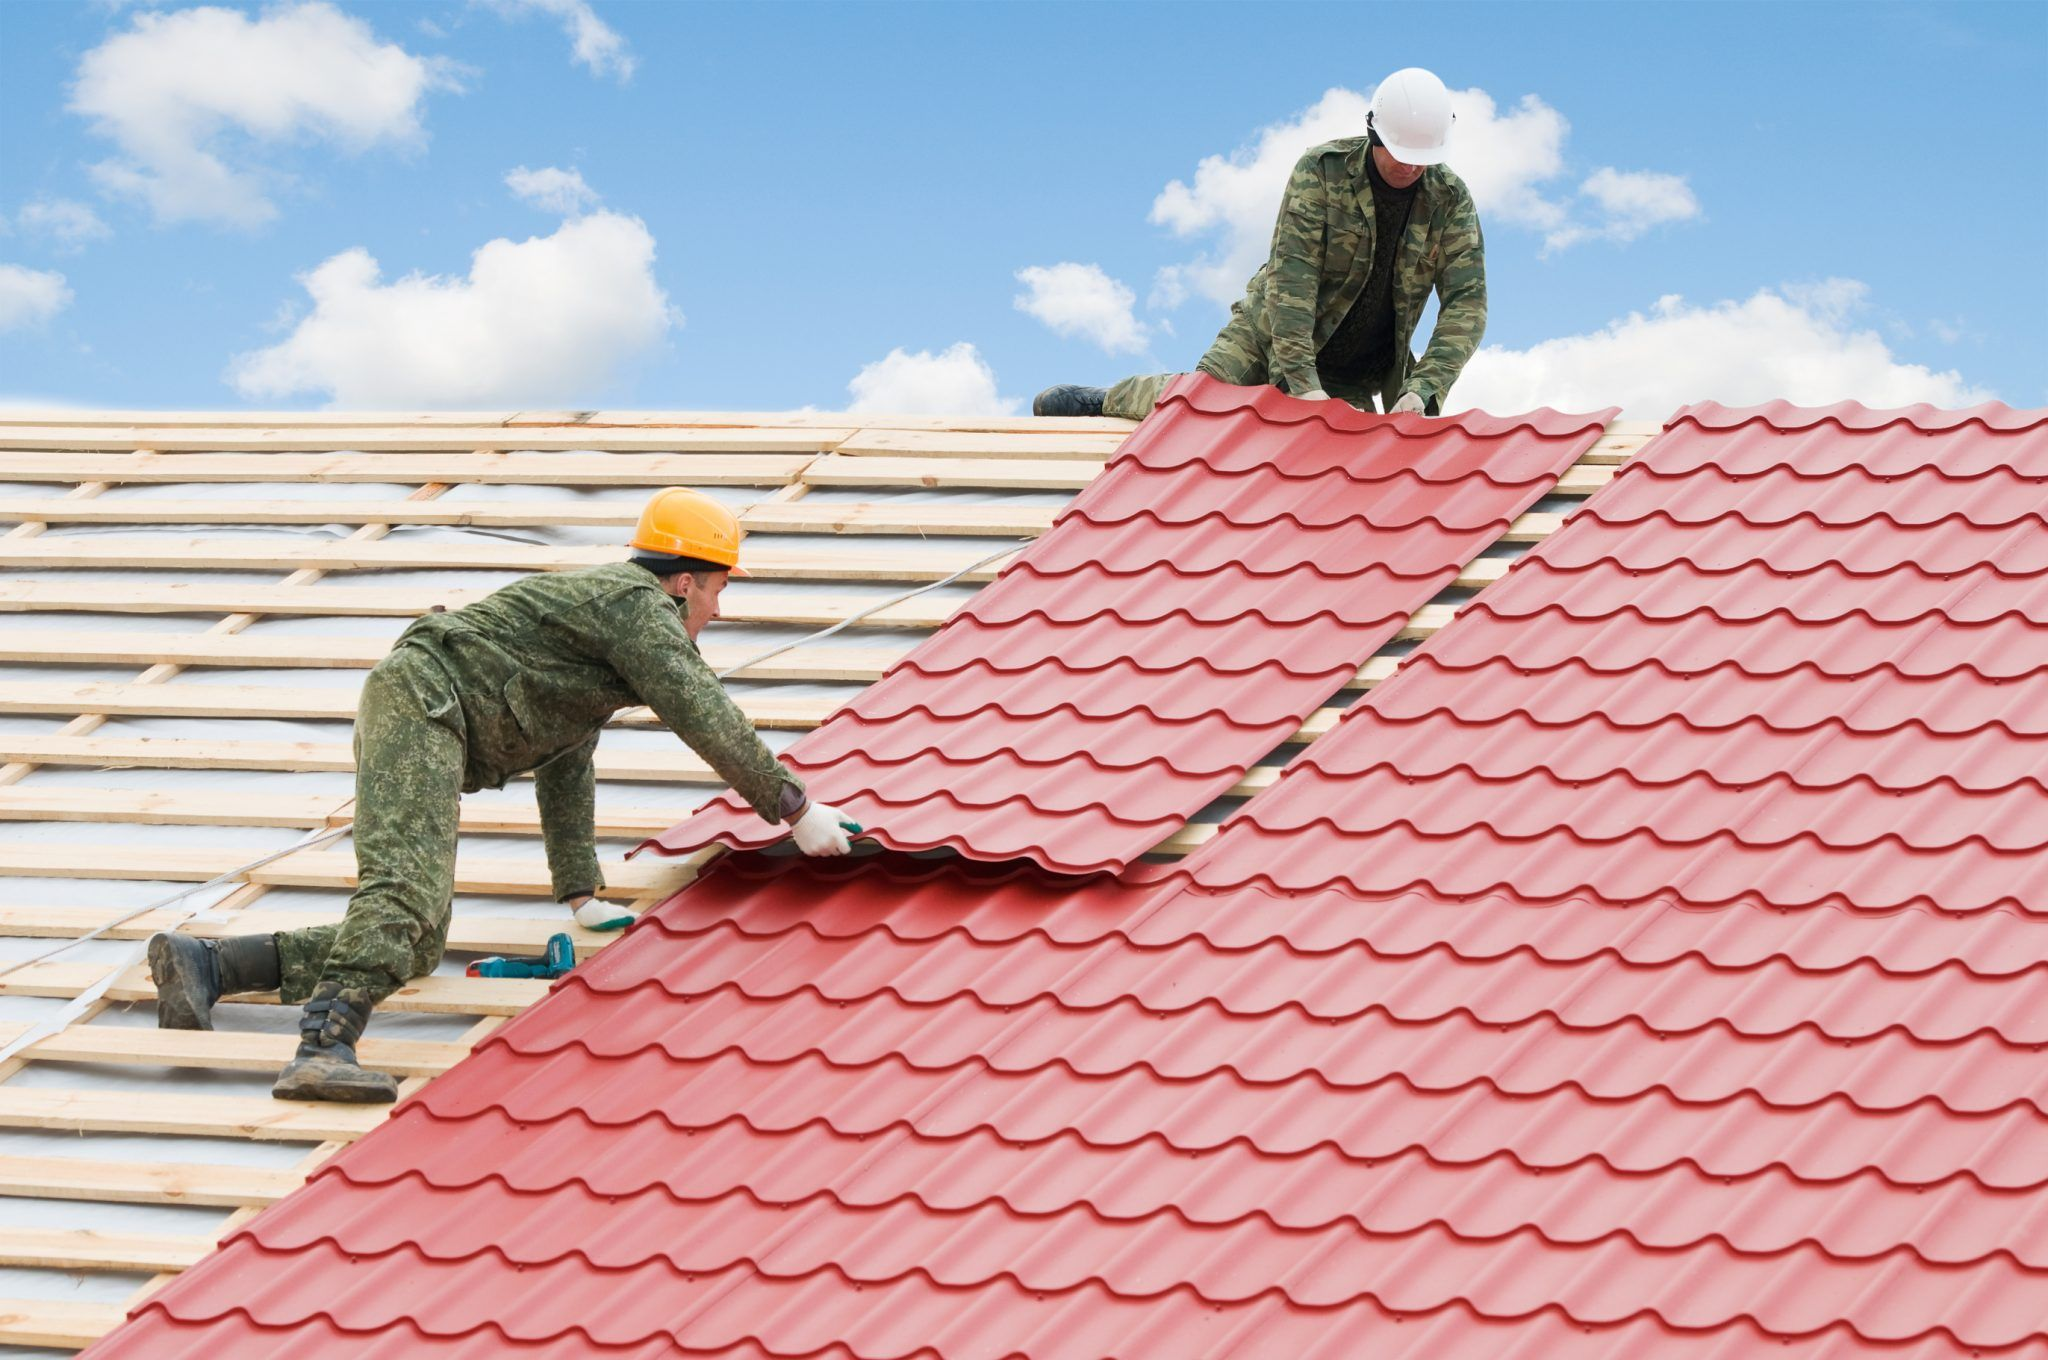 High Quality Products At Atlanta Roofing Company In 2020 Roof Restoration Plastic Roof Tiles Roof Installation